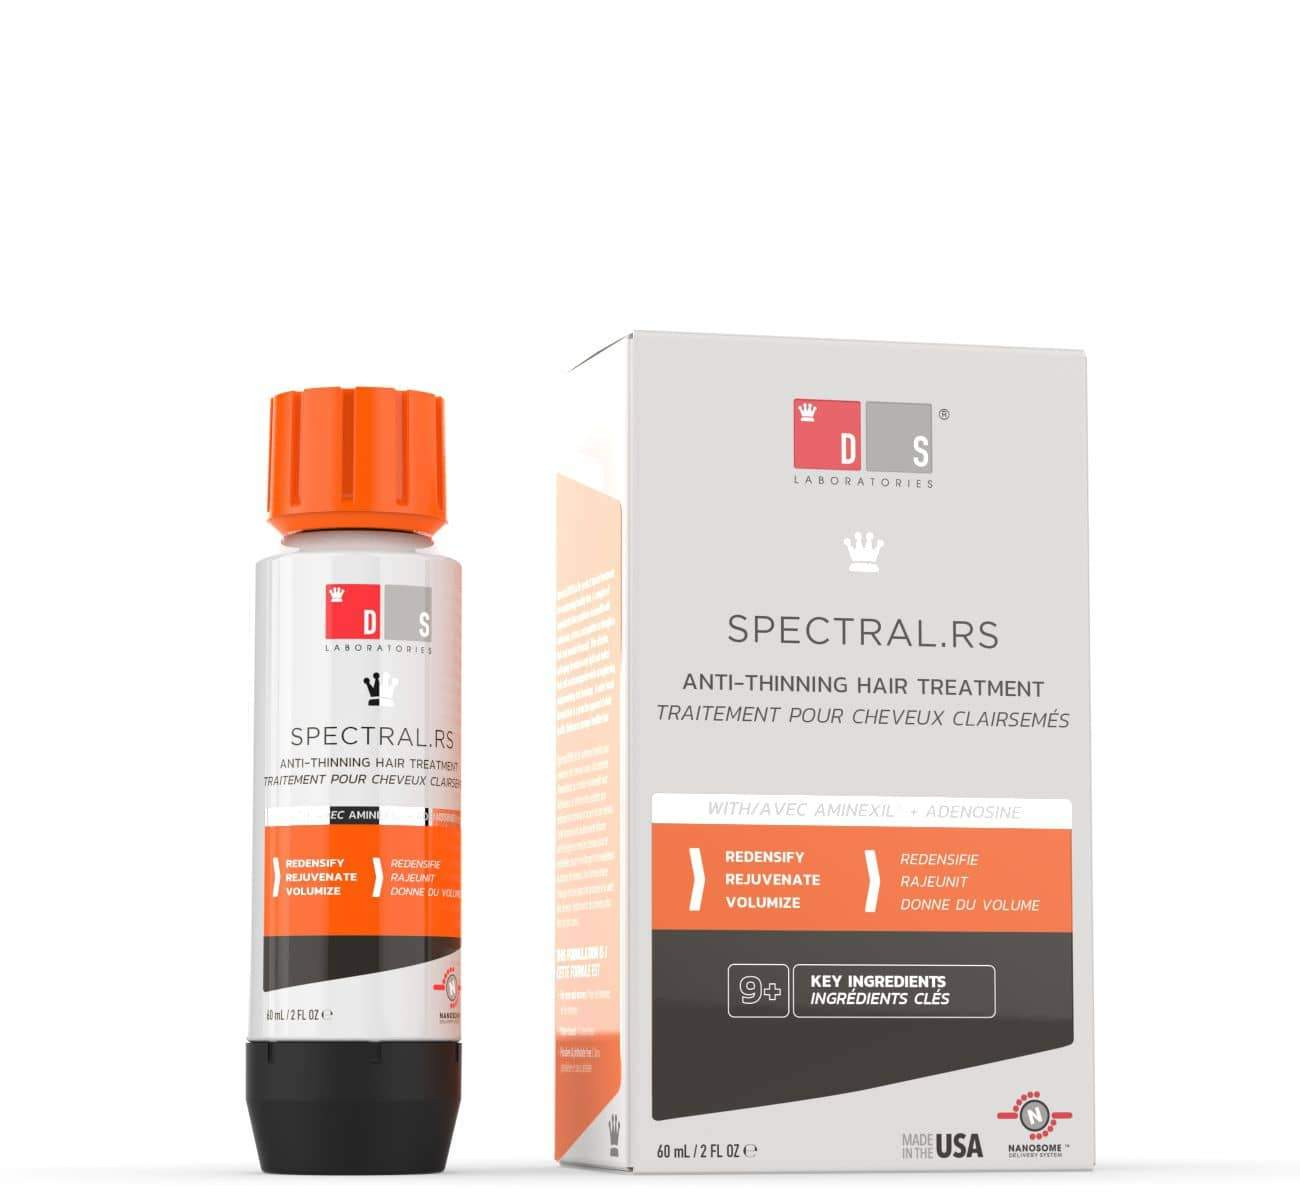 Spectral.RS | High-performance anti-thinning hair treatment